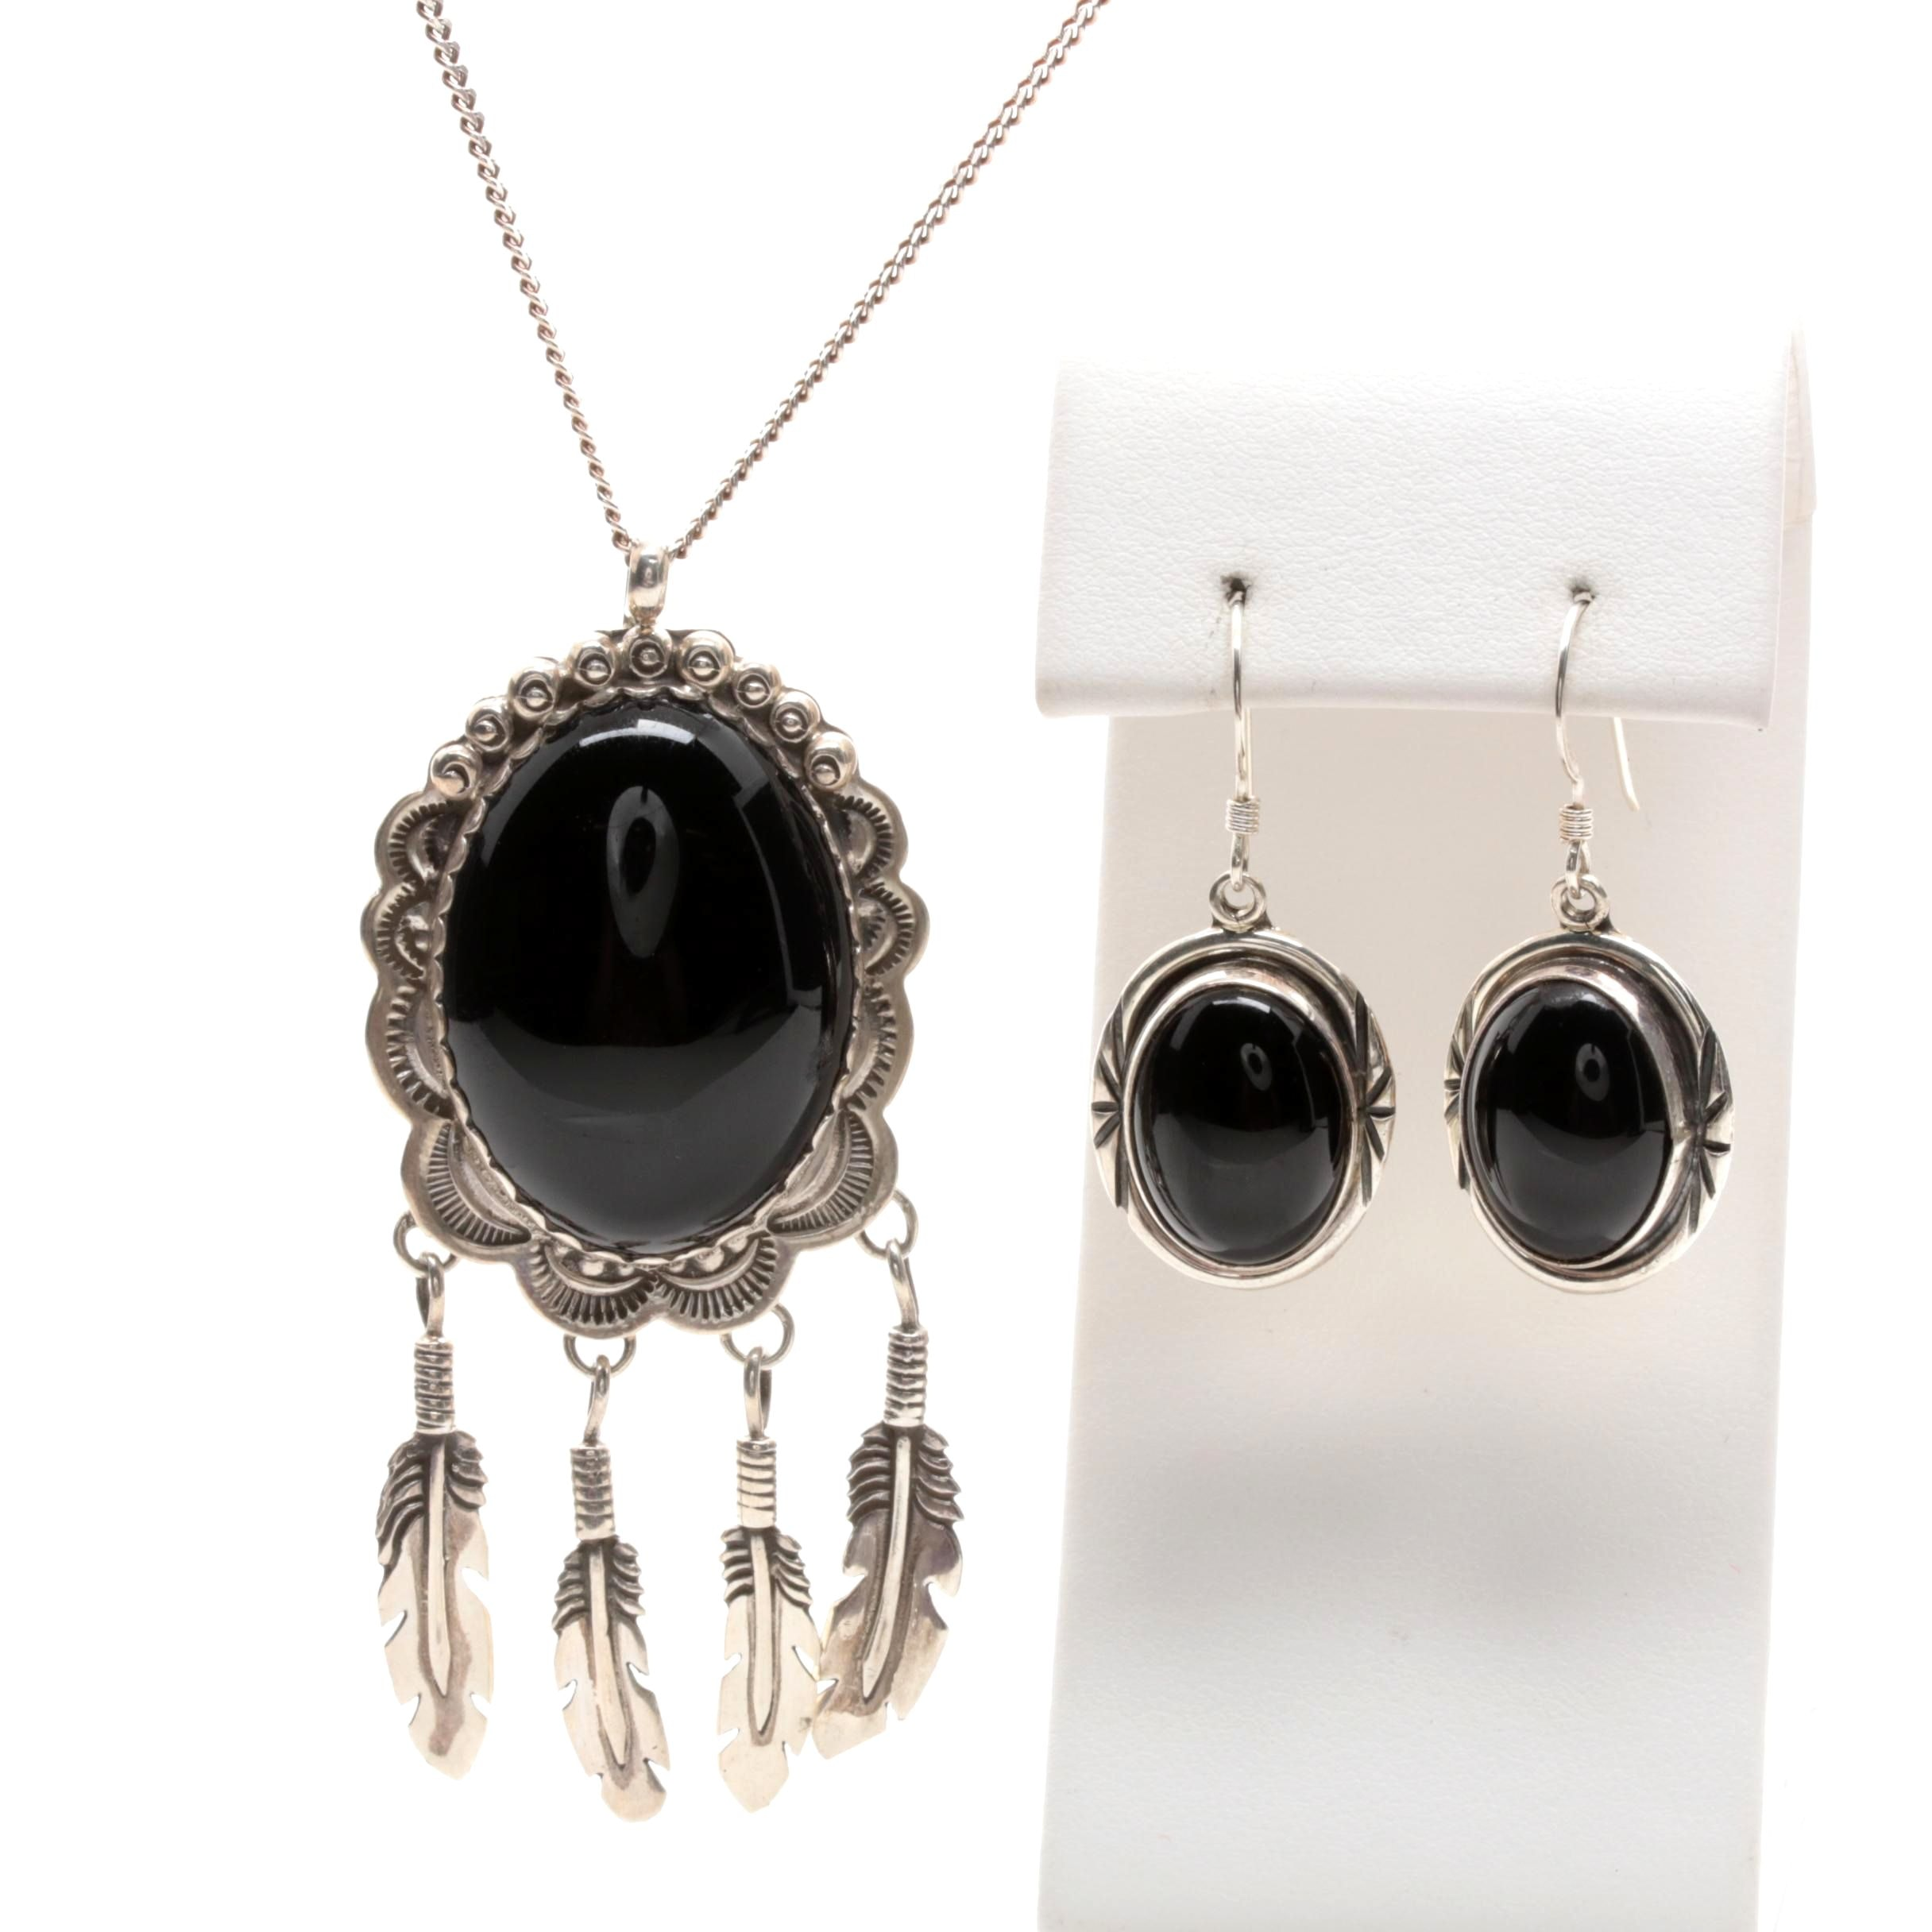 Southwest Style Sterling Silver Black Onyx Jewelry Featuring Gilbert Tom